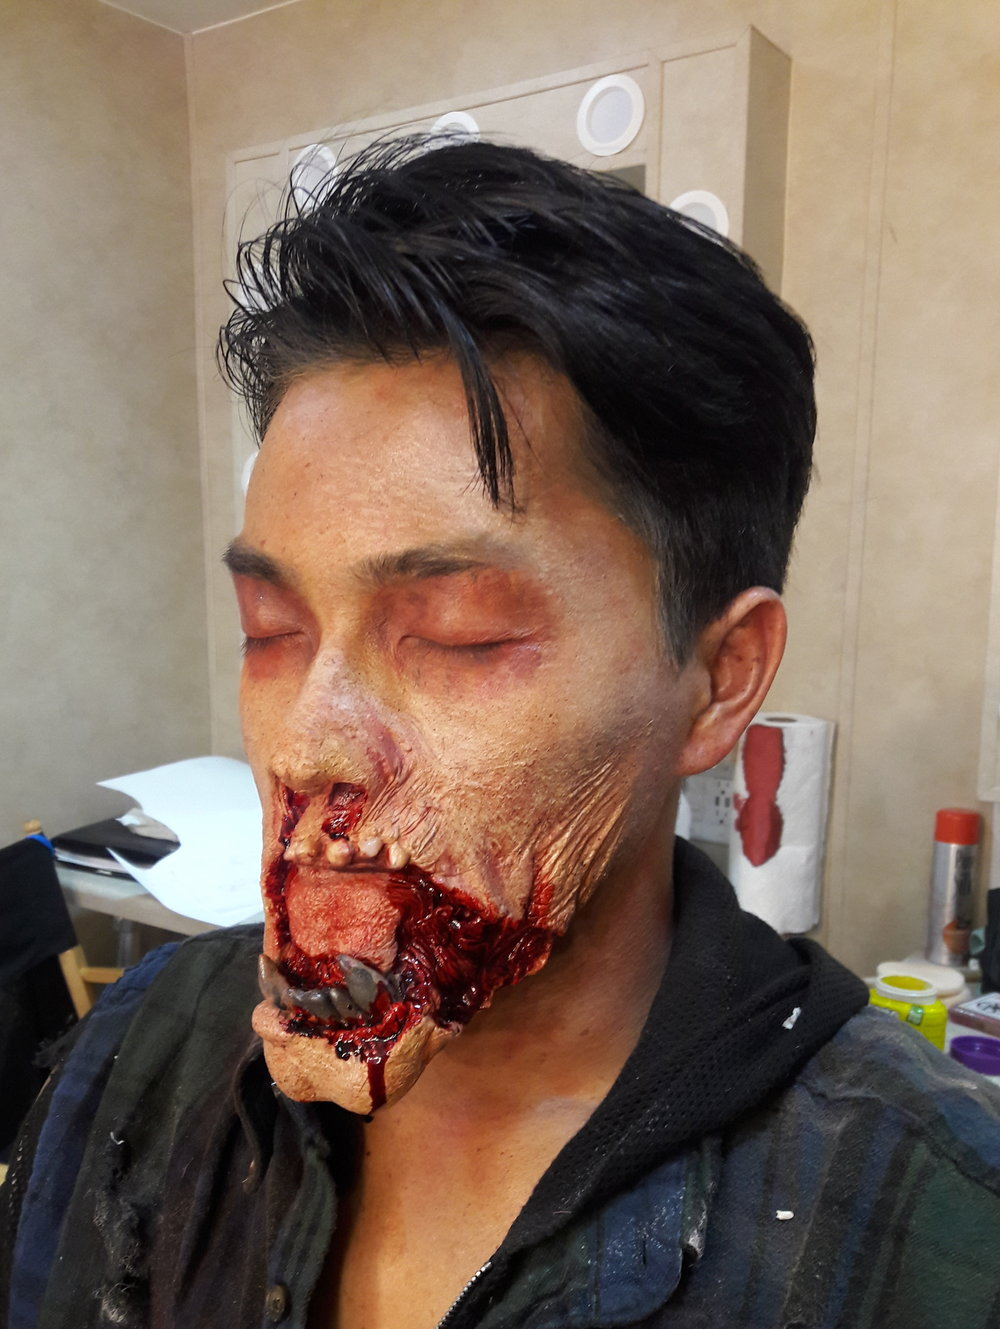 Fight of the Living Dead- Season 2, 2017  Production Company: YouTube Red & The Alpine Labs  SFX Makeup Dept. Head: Tommy Pietch  Makeup Provided by: EBA Performance Makeup  Prosthetic: Sculpted by Me, Moulded by Tommy Pietch, Foam Run by Laney Chantal White